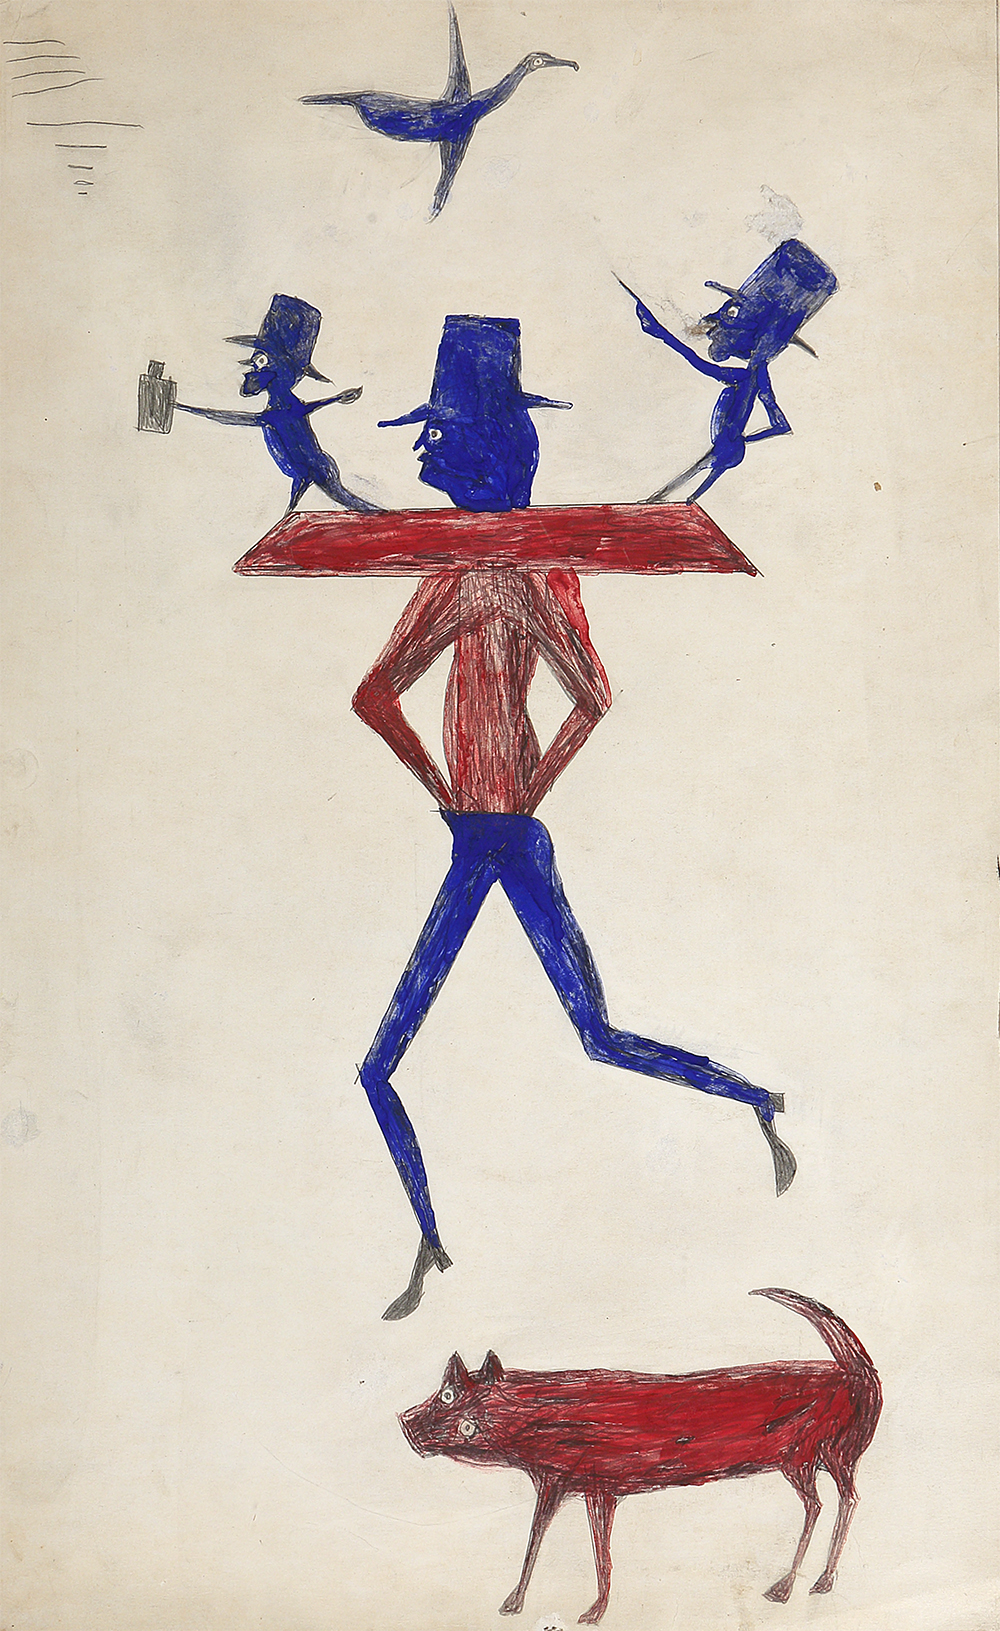 Man with Yoke, by Bill Traylor, c. 1939. Private Collection. Photo by Bonnie H. Morrison, NYC.